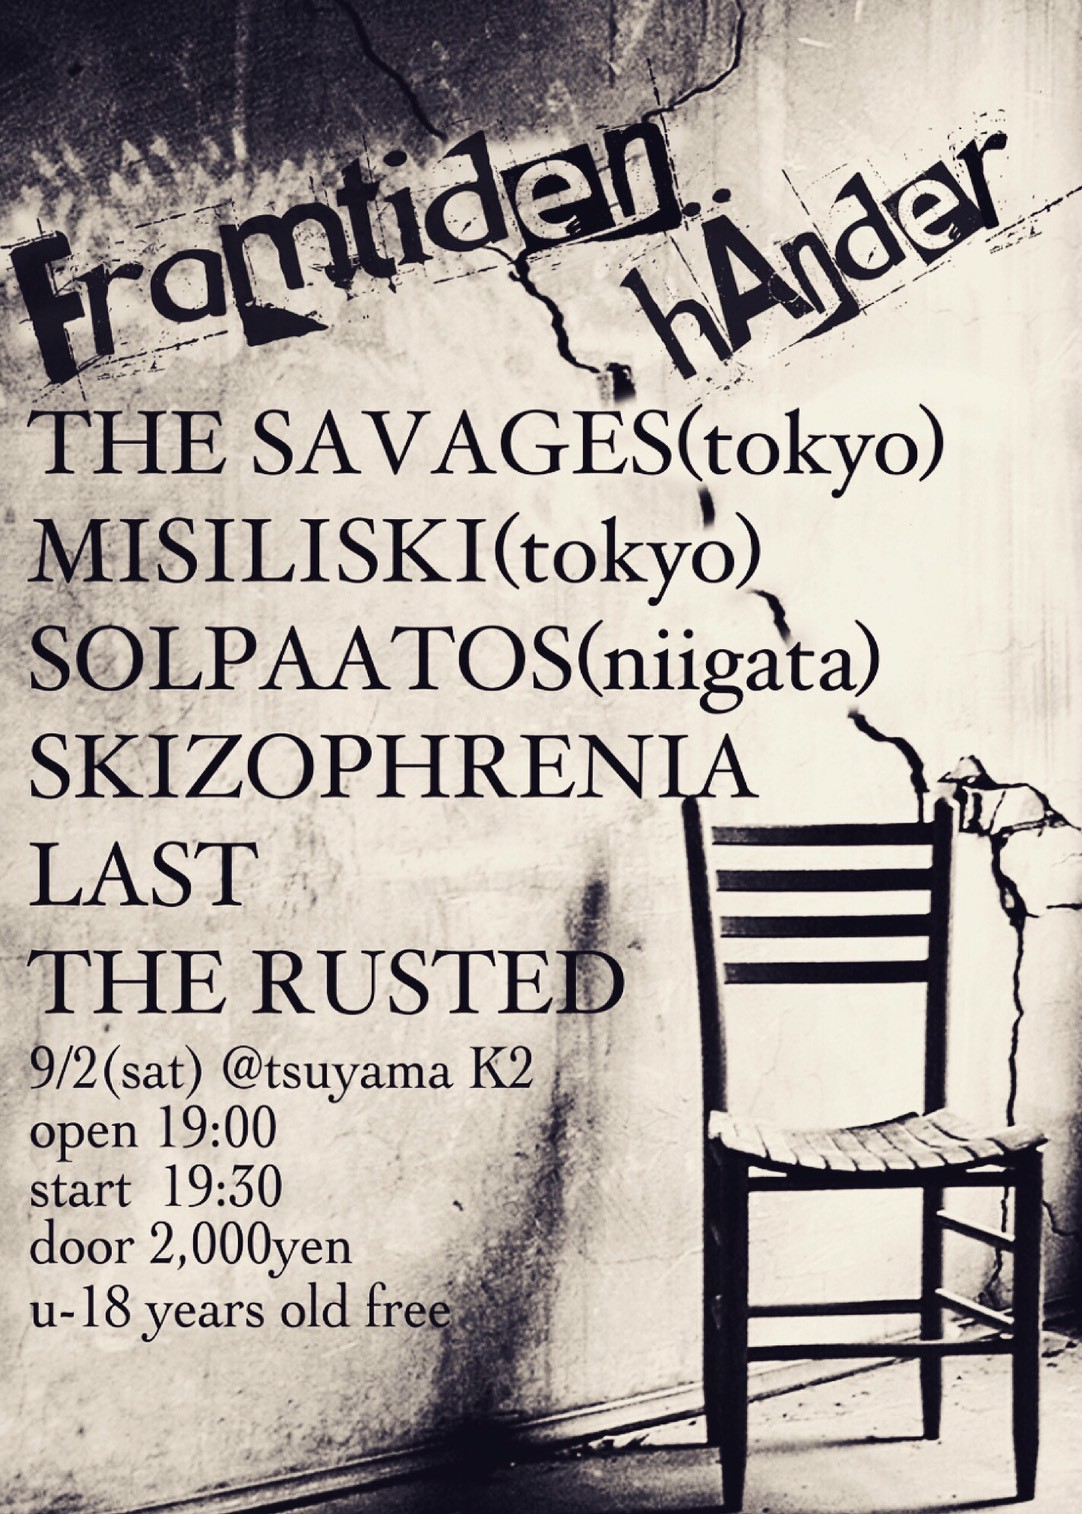 THE RUSTED解散!